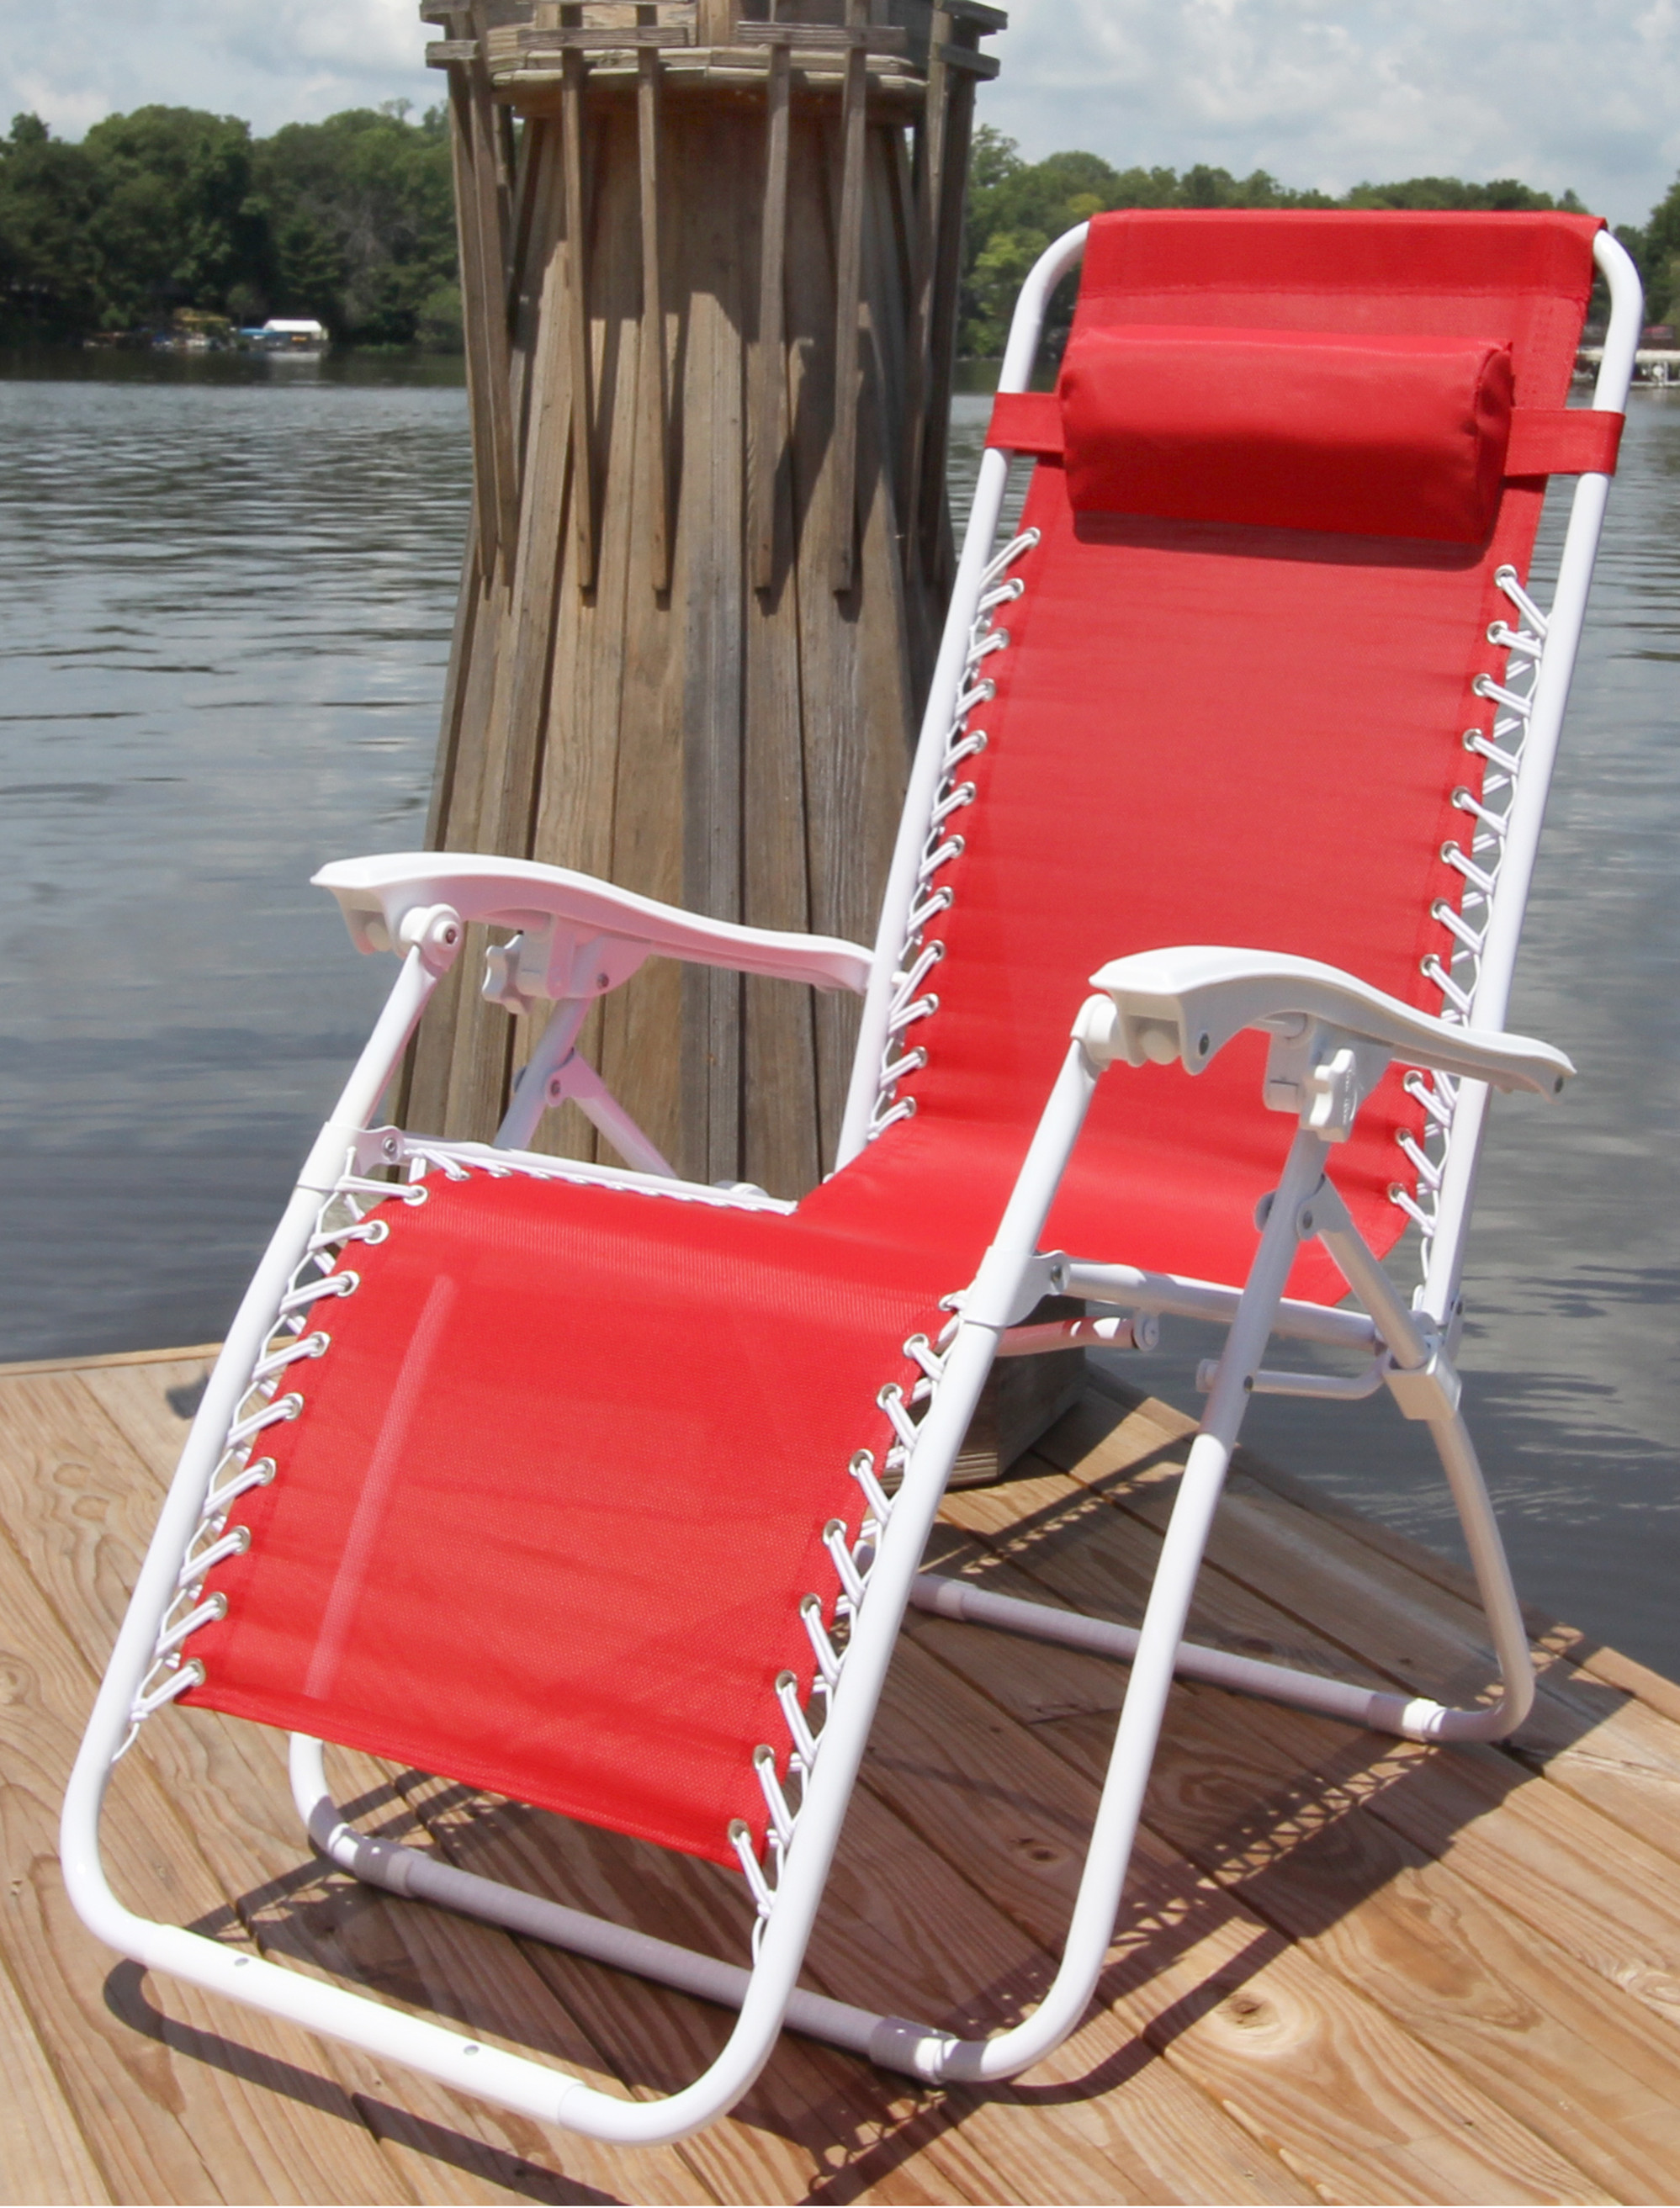 Big And Tall Lawn Chairs Capacity Big And Tall Extra Wide Black